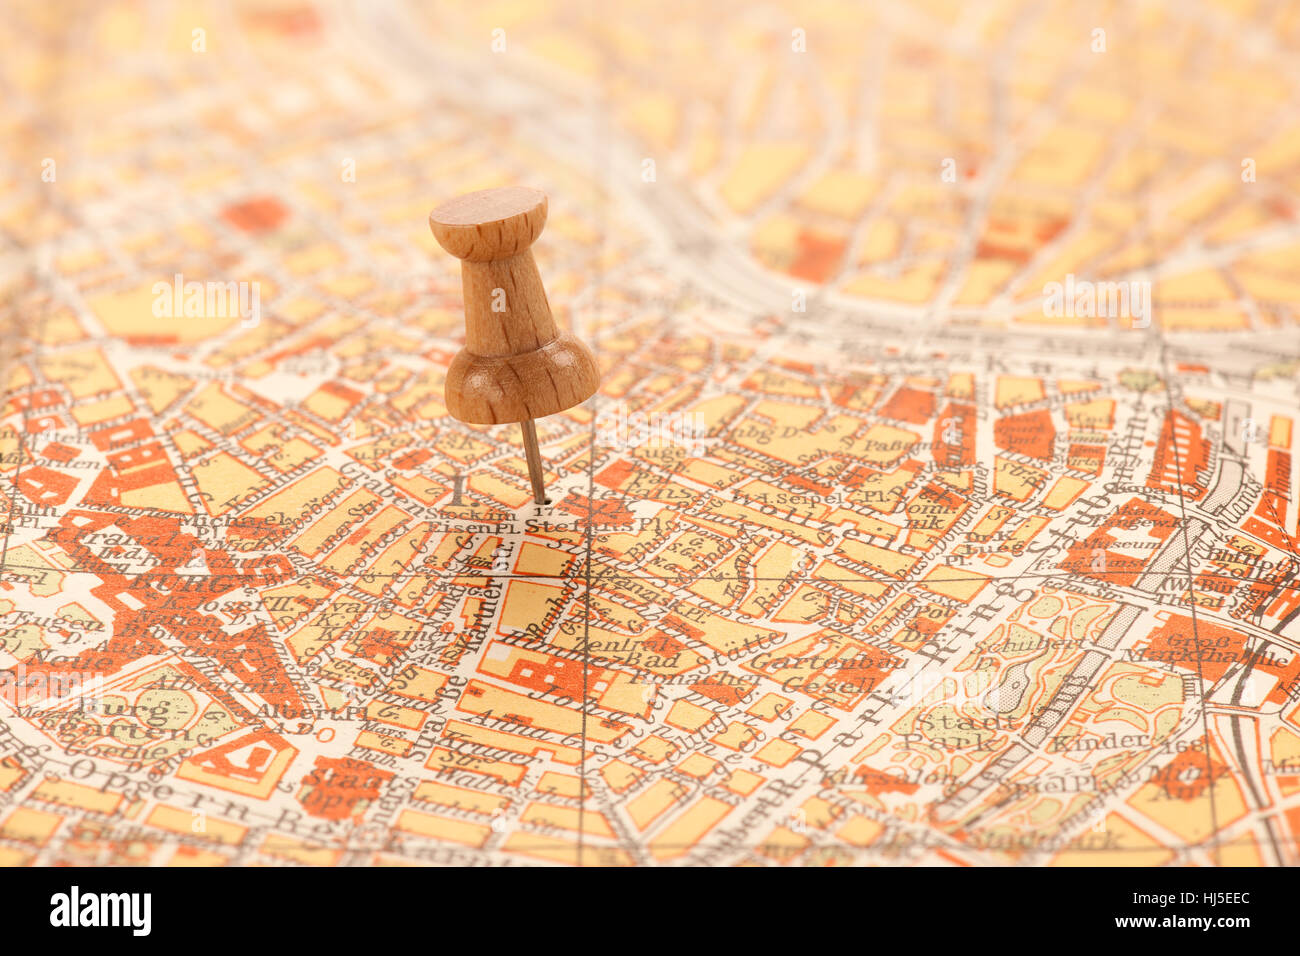 Vienna Austria Europe Pushpin Thumbtacks Yellowed Old Map - Austria europe map